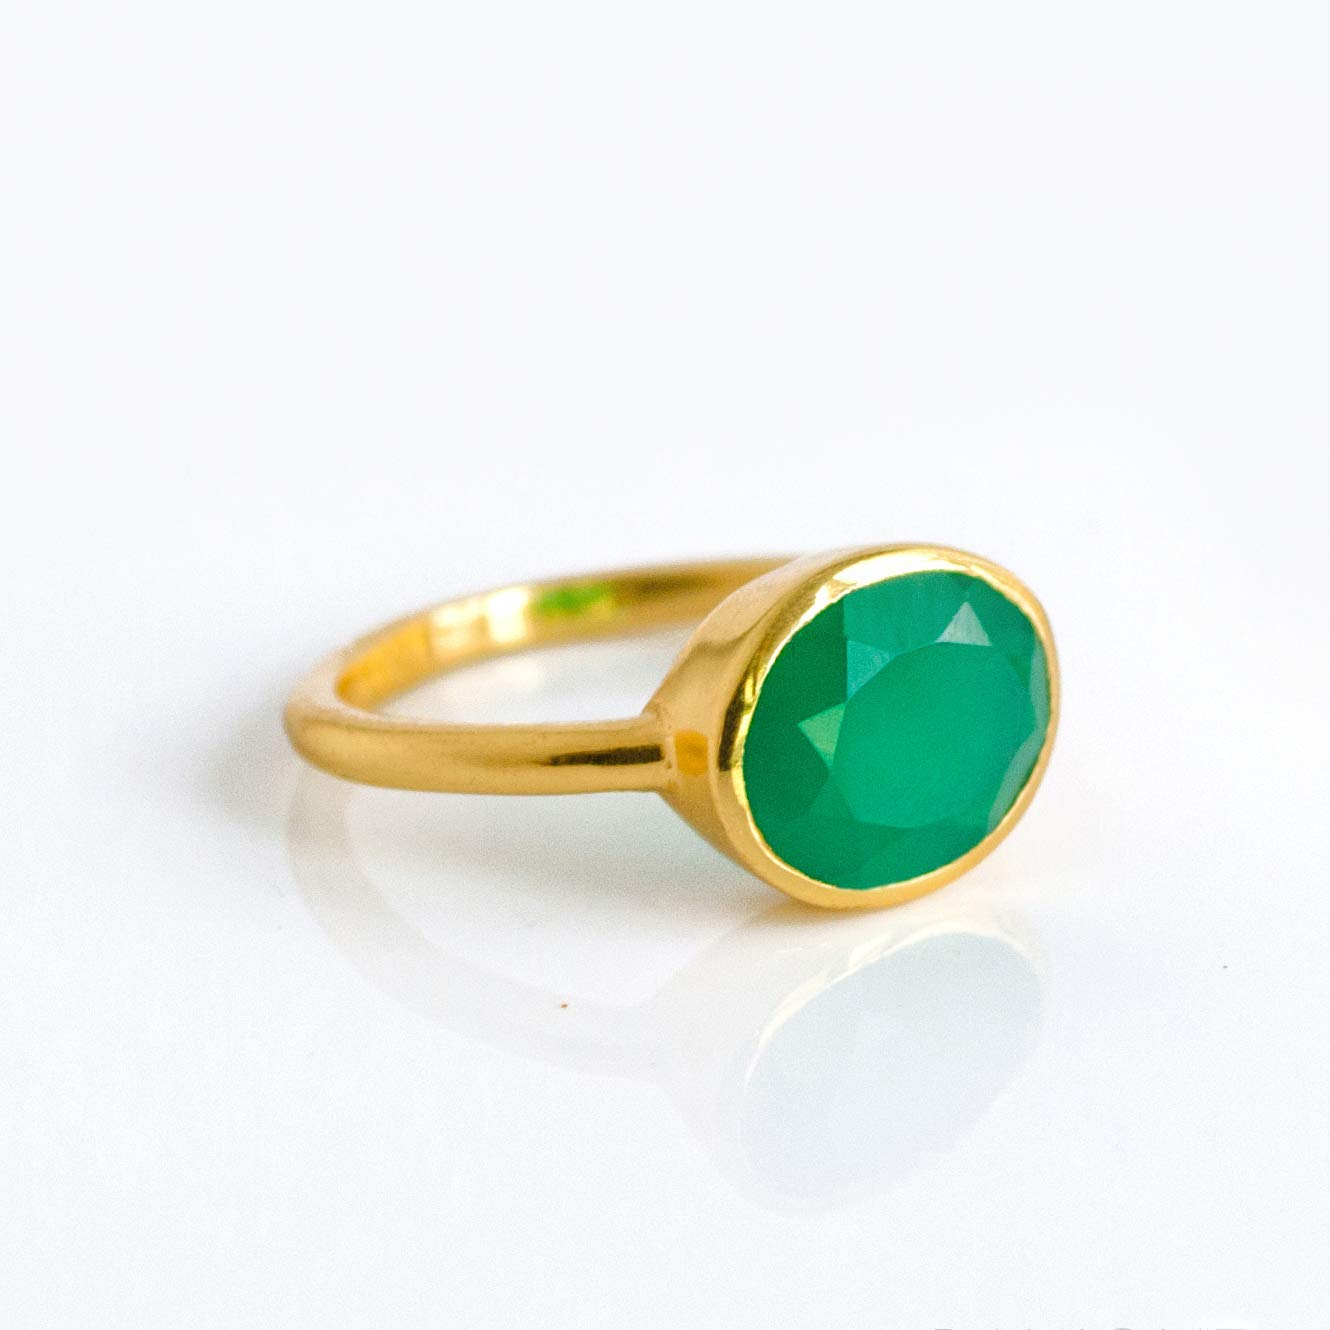 551502df6 Get Quotations · Oval Emerald Green Onyx Ring Bezel Set in Sterling Silver  or Vermeil Gold